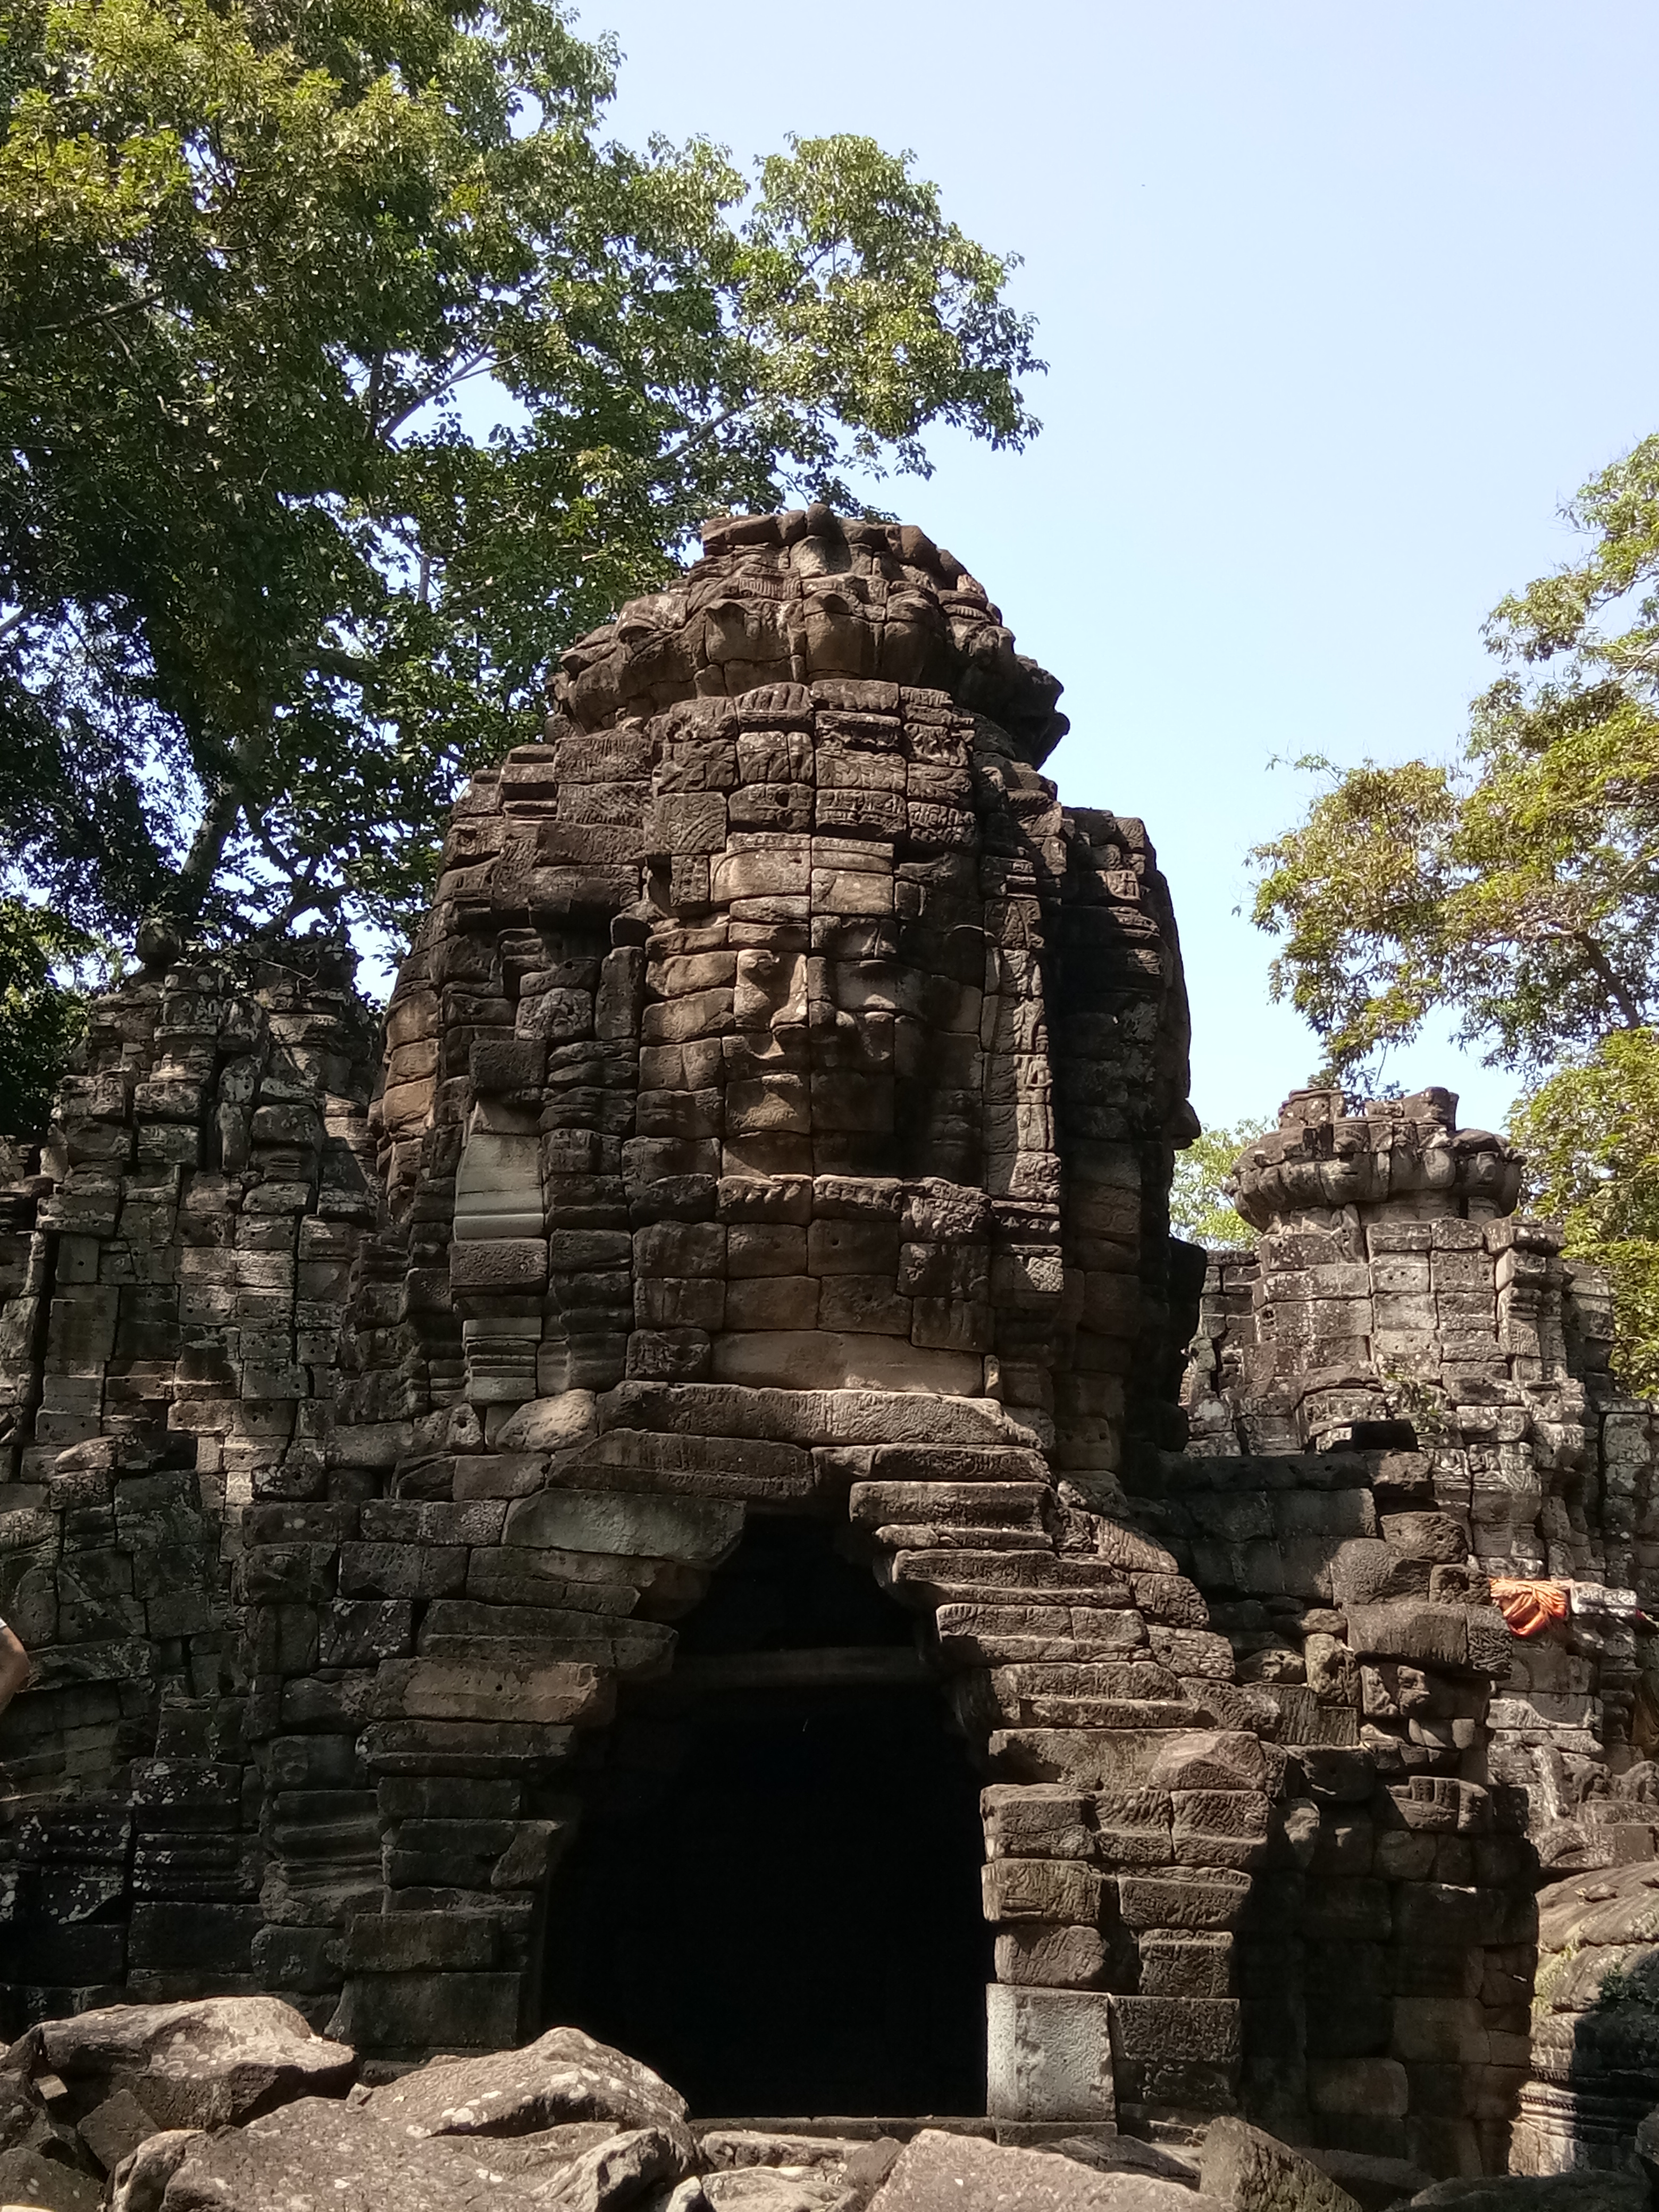 Forgotten temple of Banteay Chhmar